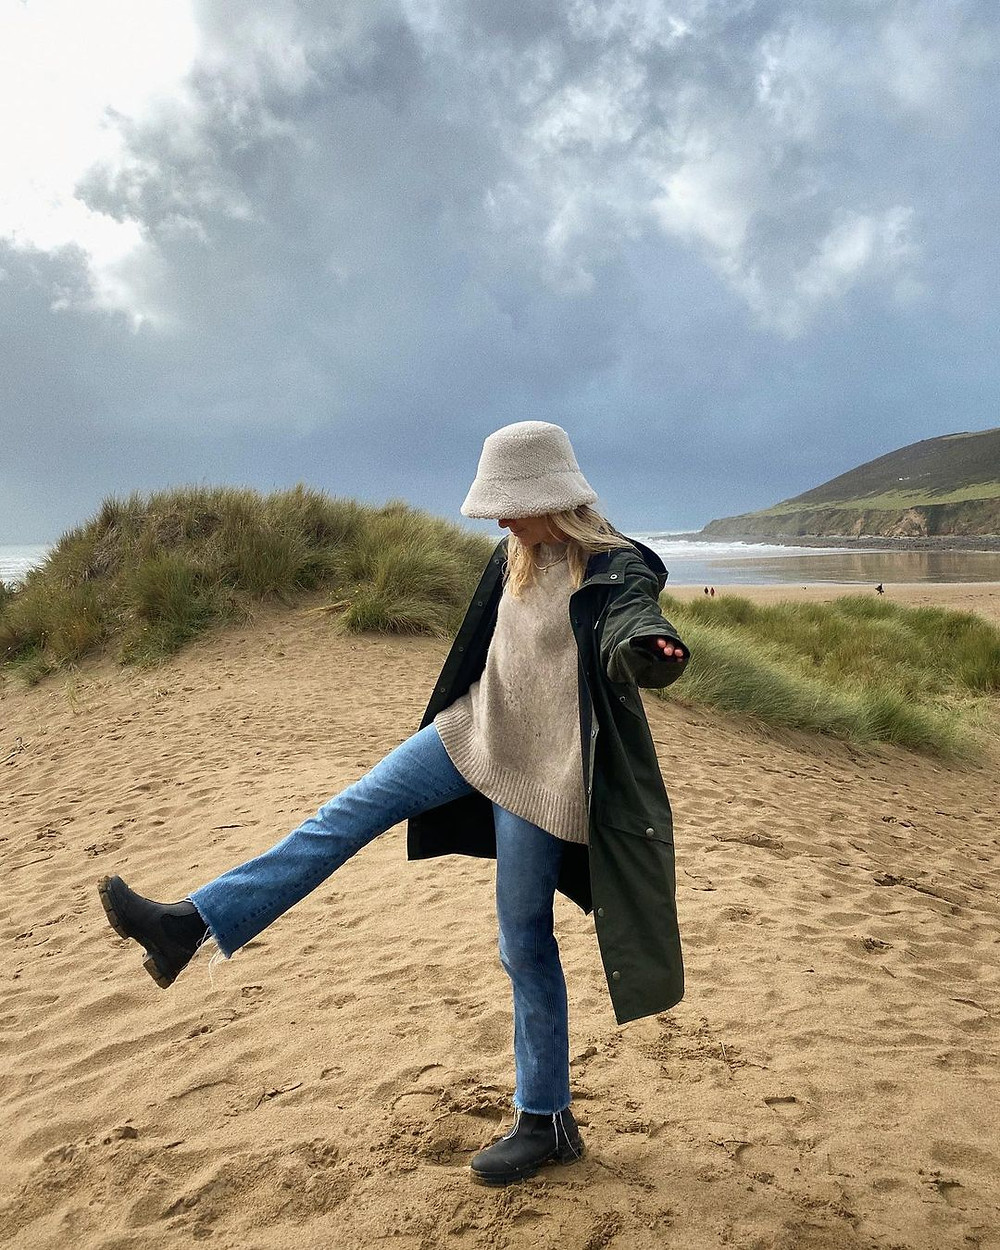 florence pugh wears cute rain boots, jeans, sweater, green jacket, and fuzzy bucket hat while standing on a sandy beach